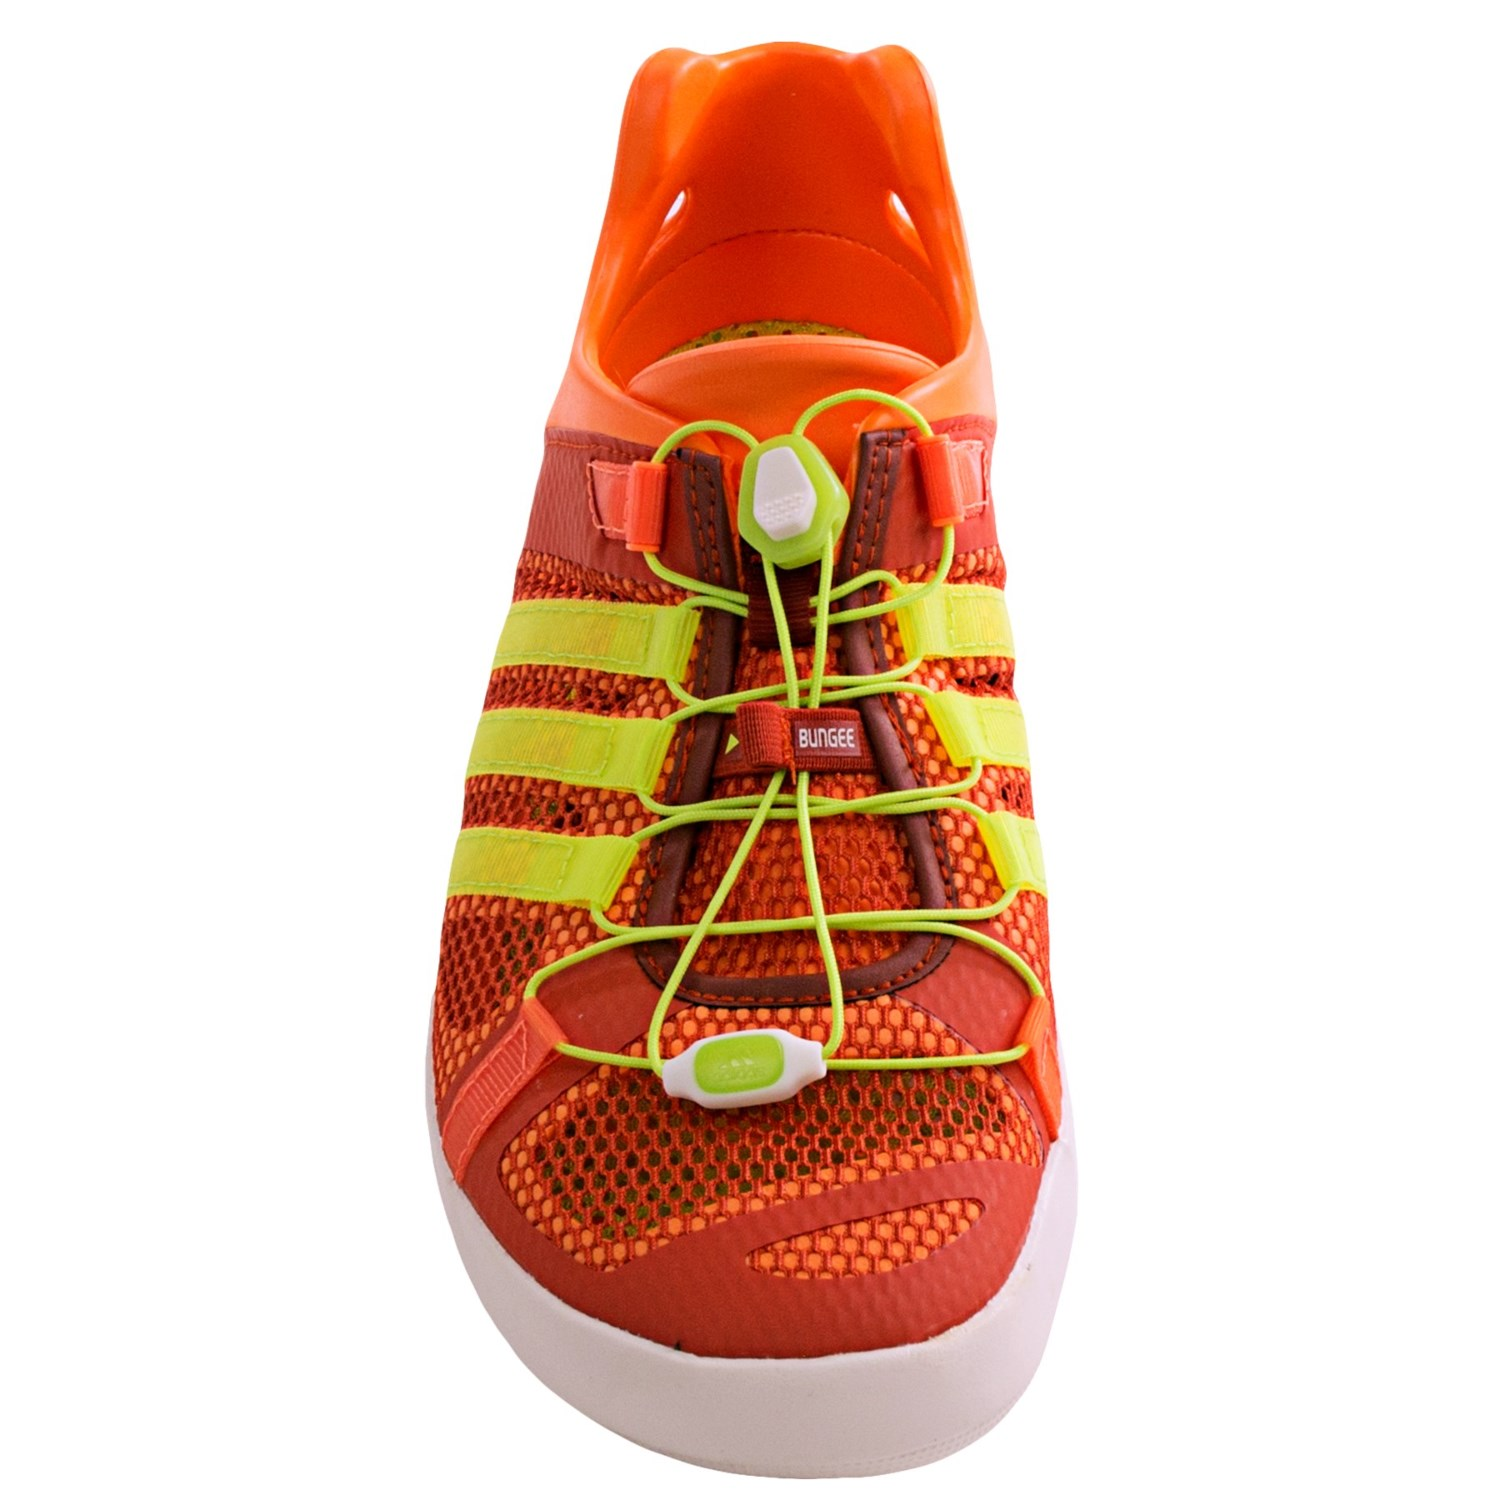 Adidas Climacool Breeze Shoes